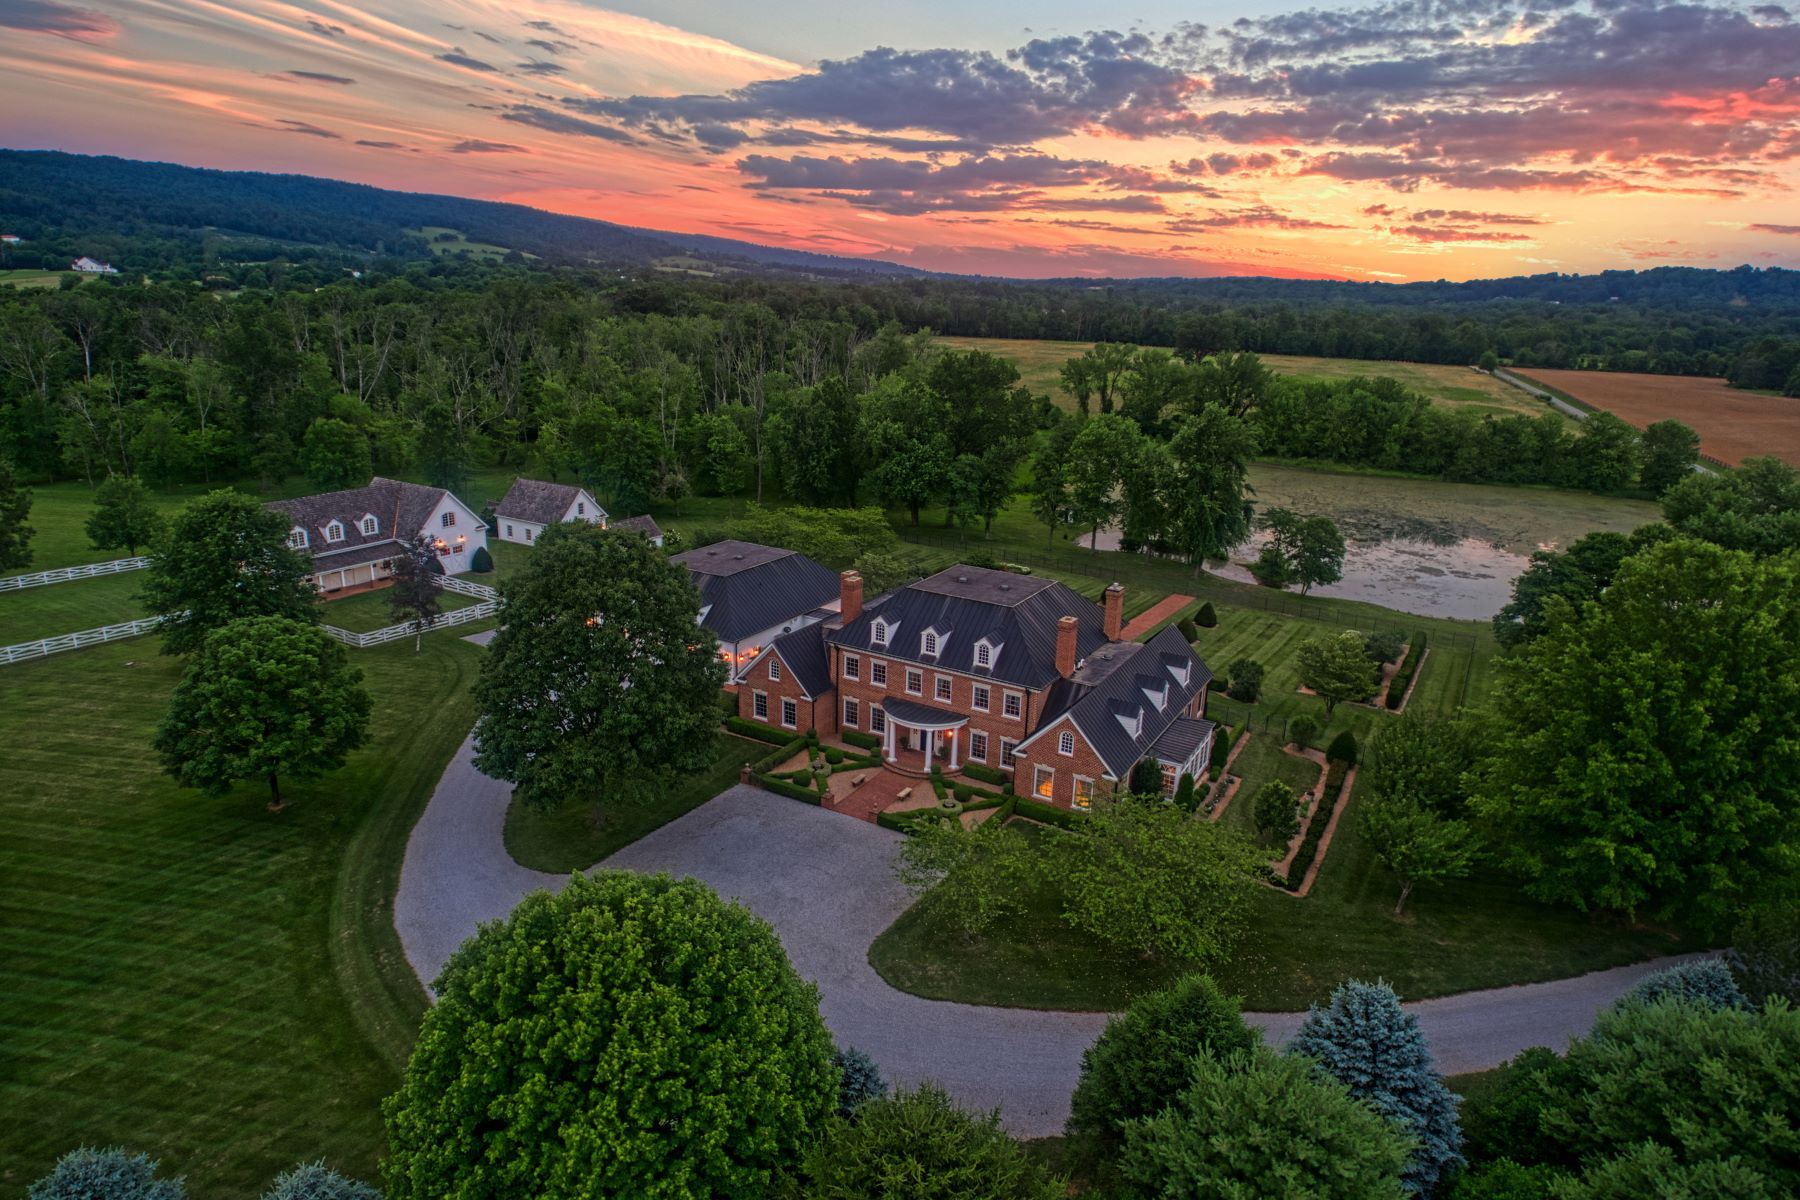 Single Family Homes for Sale at Monte Subasio Estate 18599 Calumet Ln, Bluemont, Virginia 20135 United States